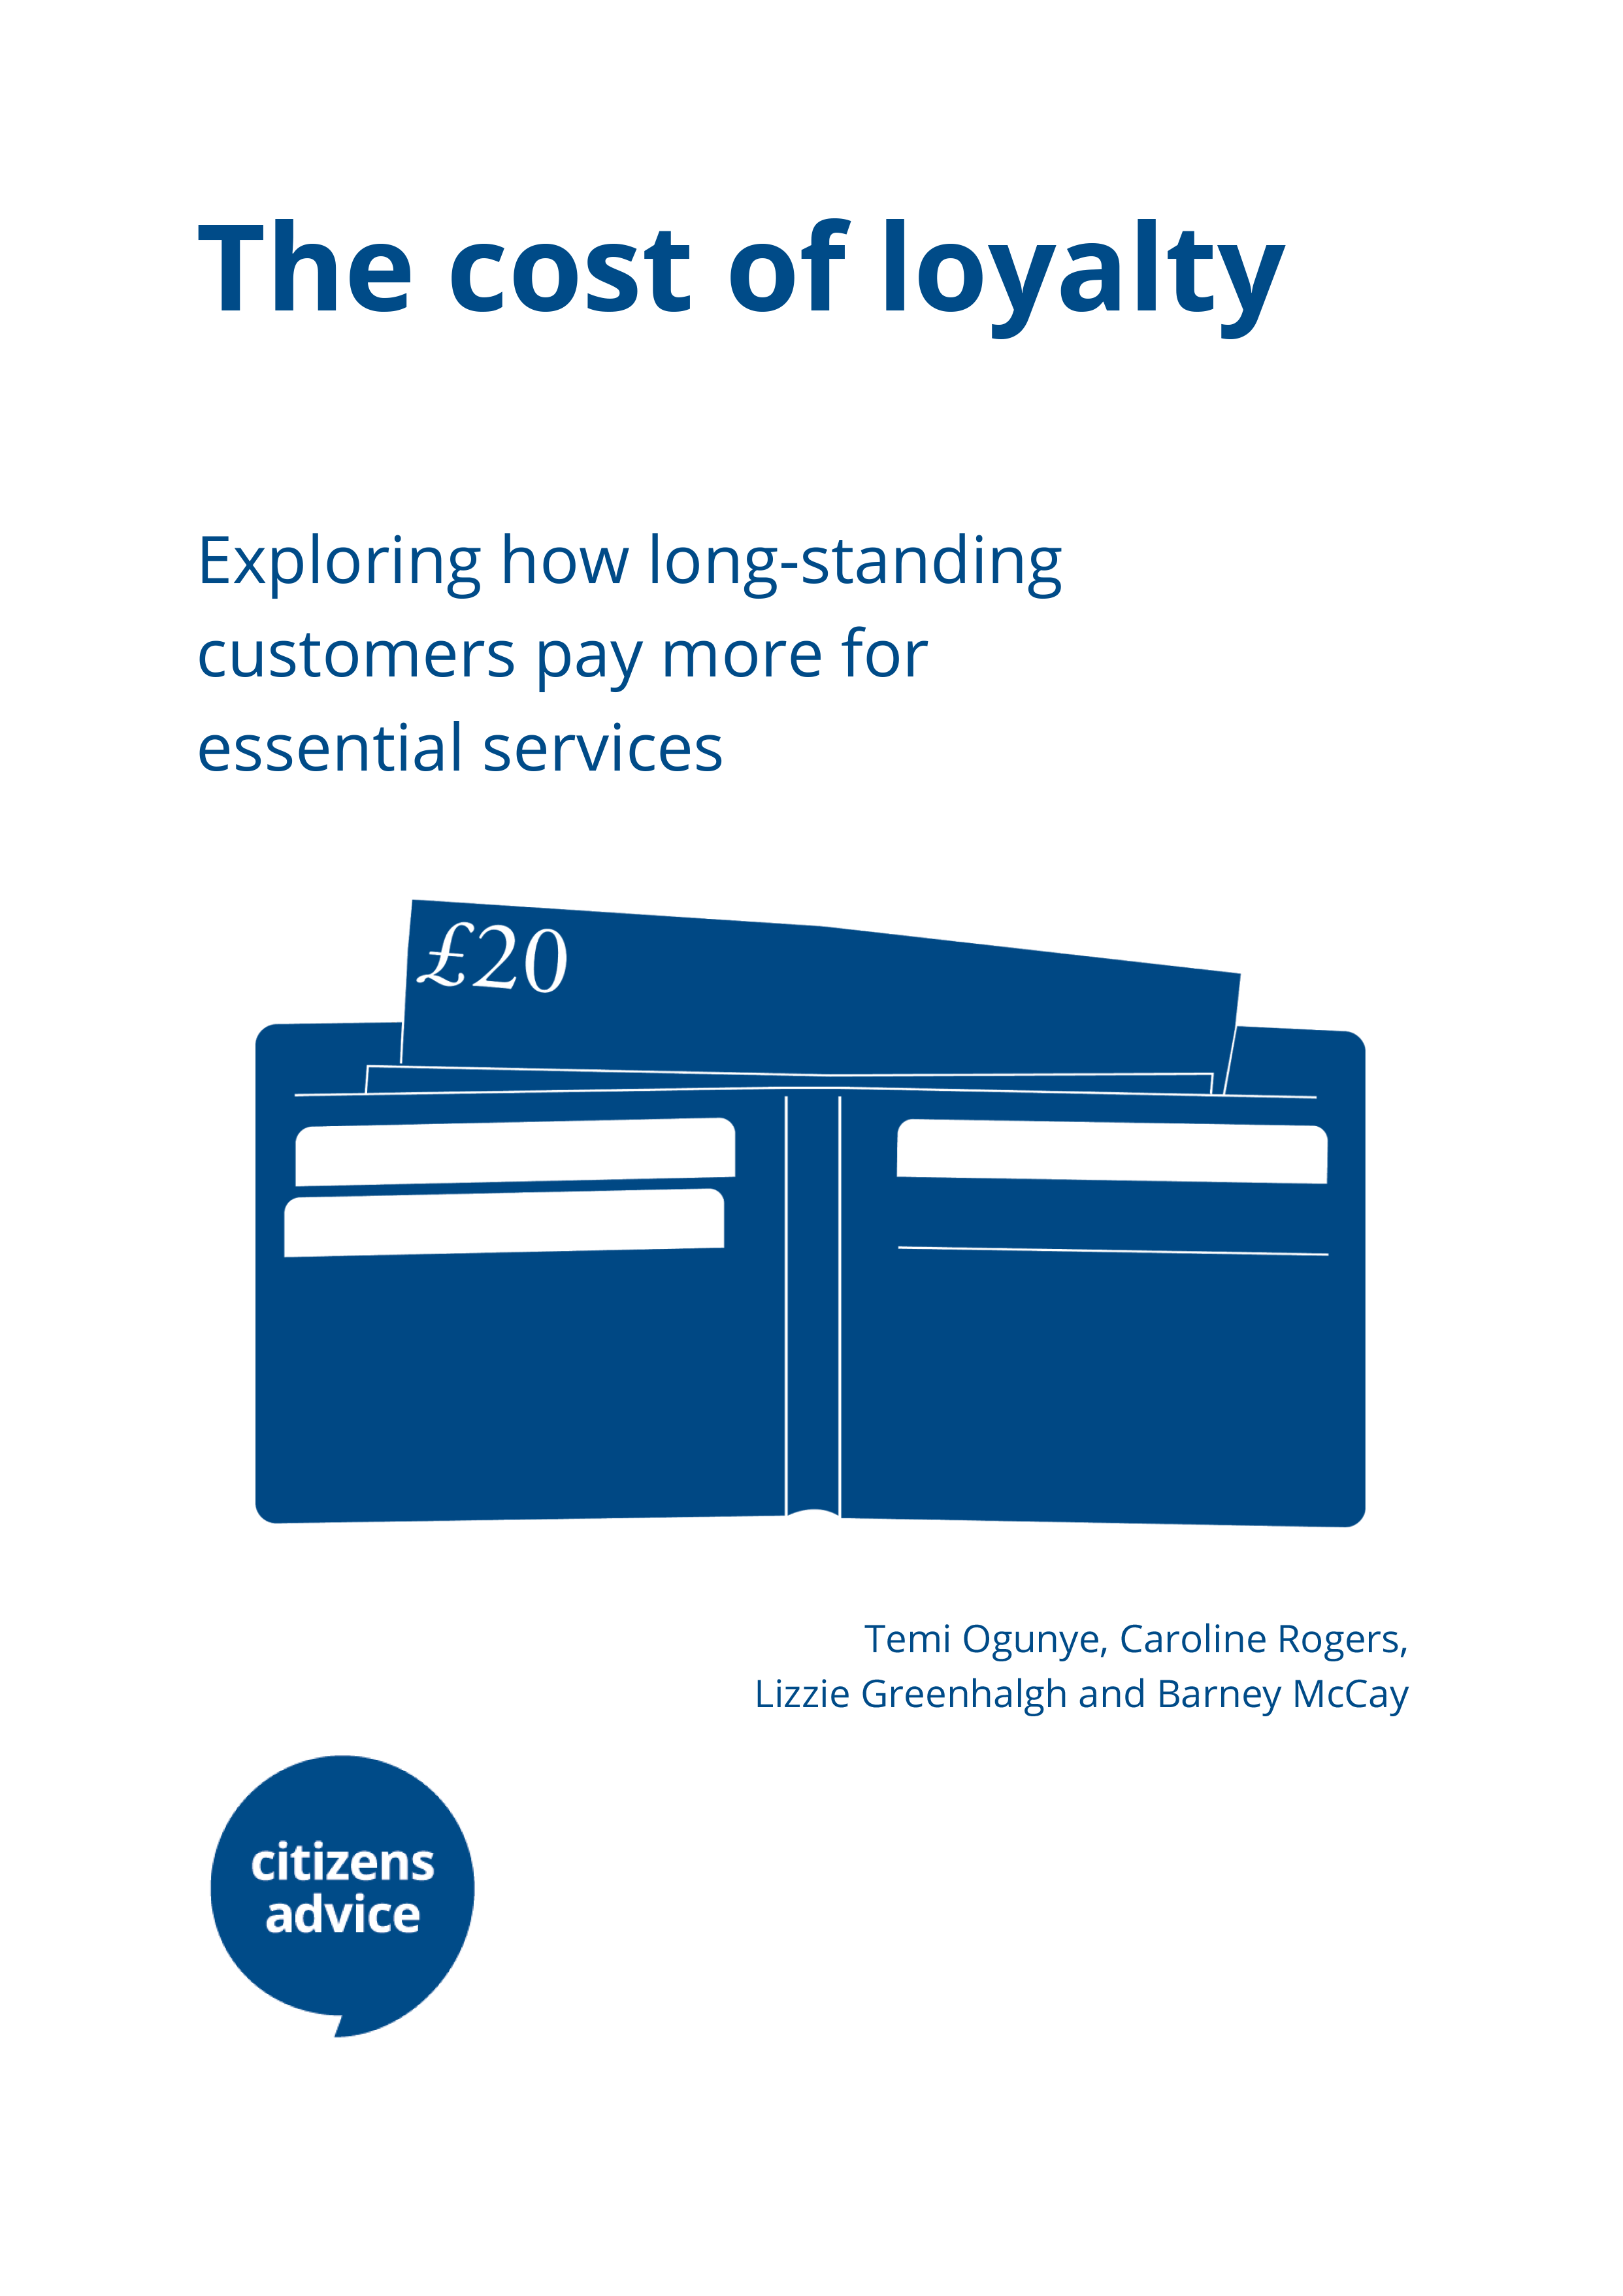 The cost of loyalty report cover